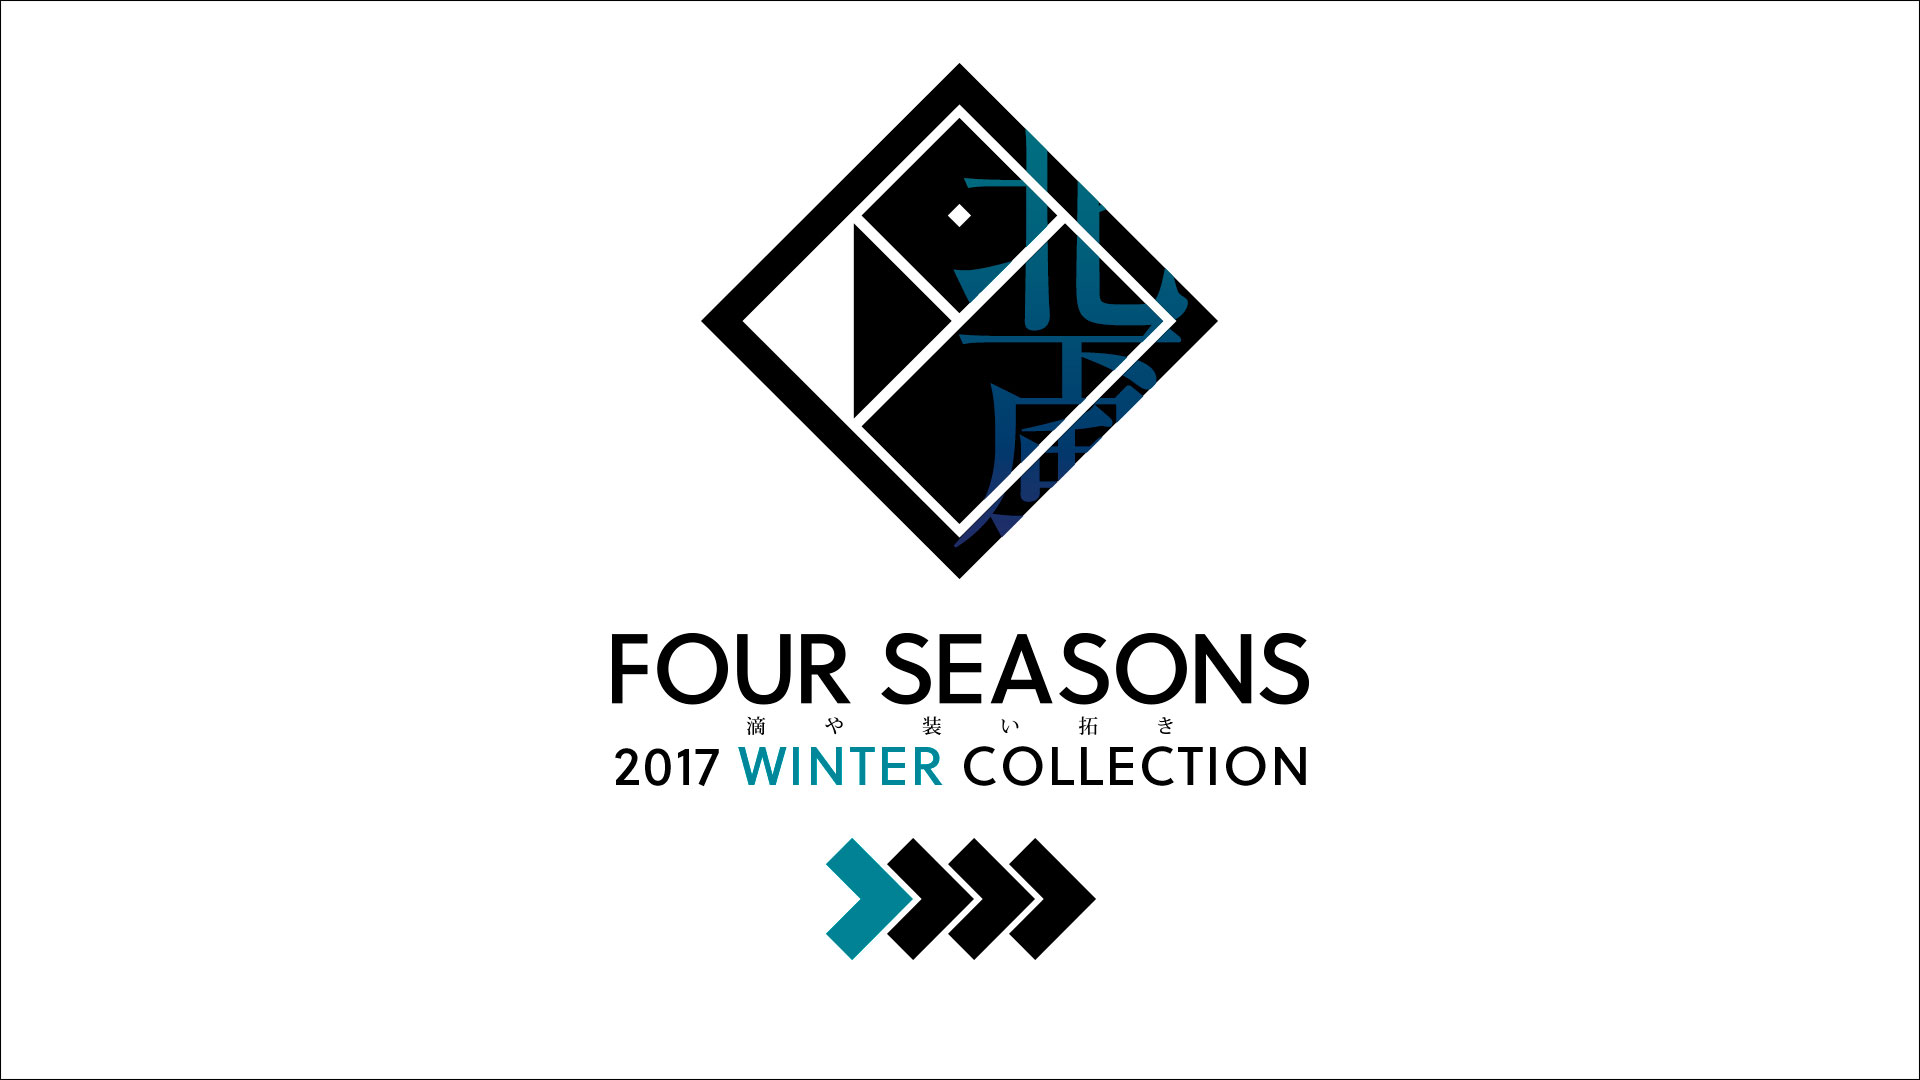 FOUR SEASONS 2017 WINTER COLLECTION